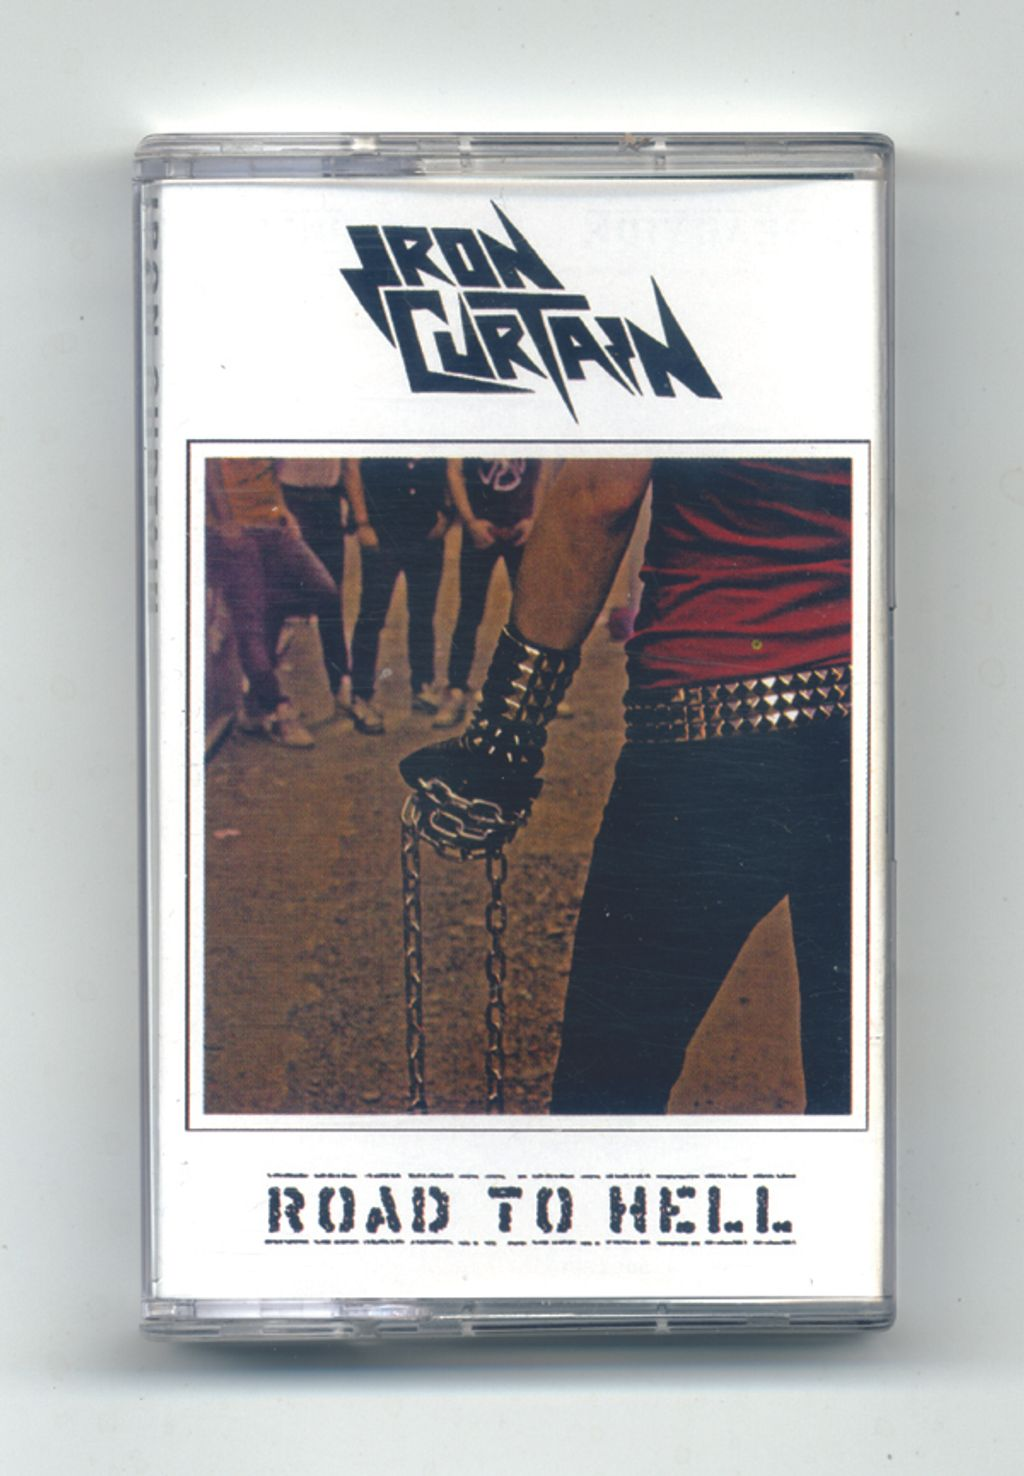 iron curtain front cover.jpg